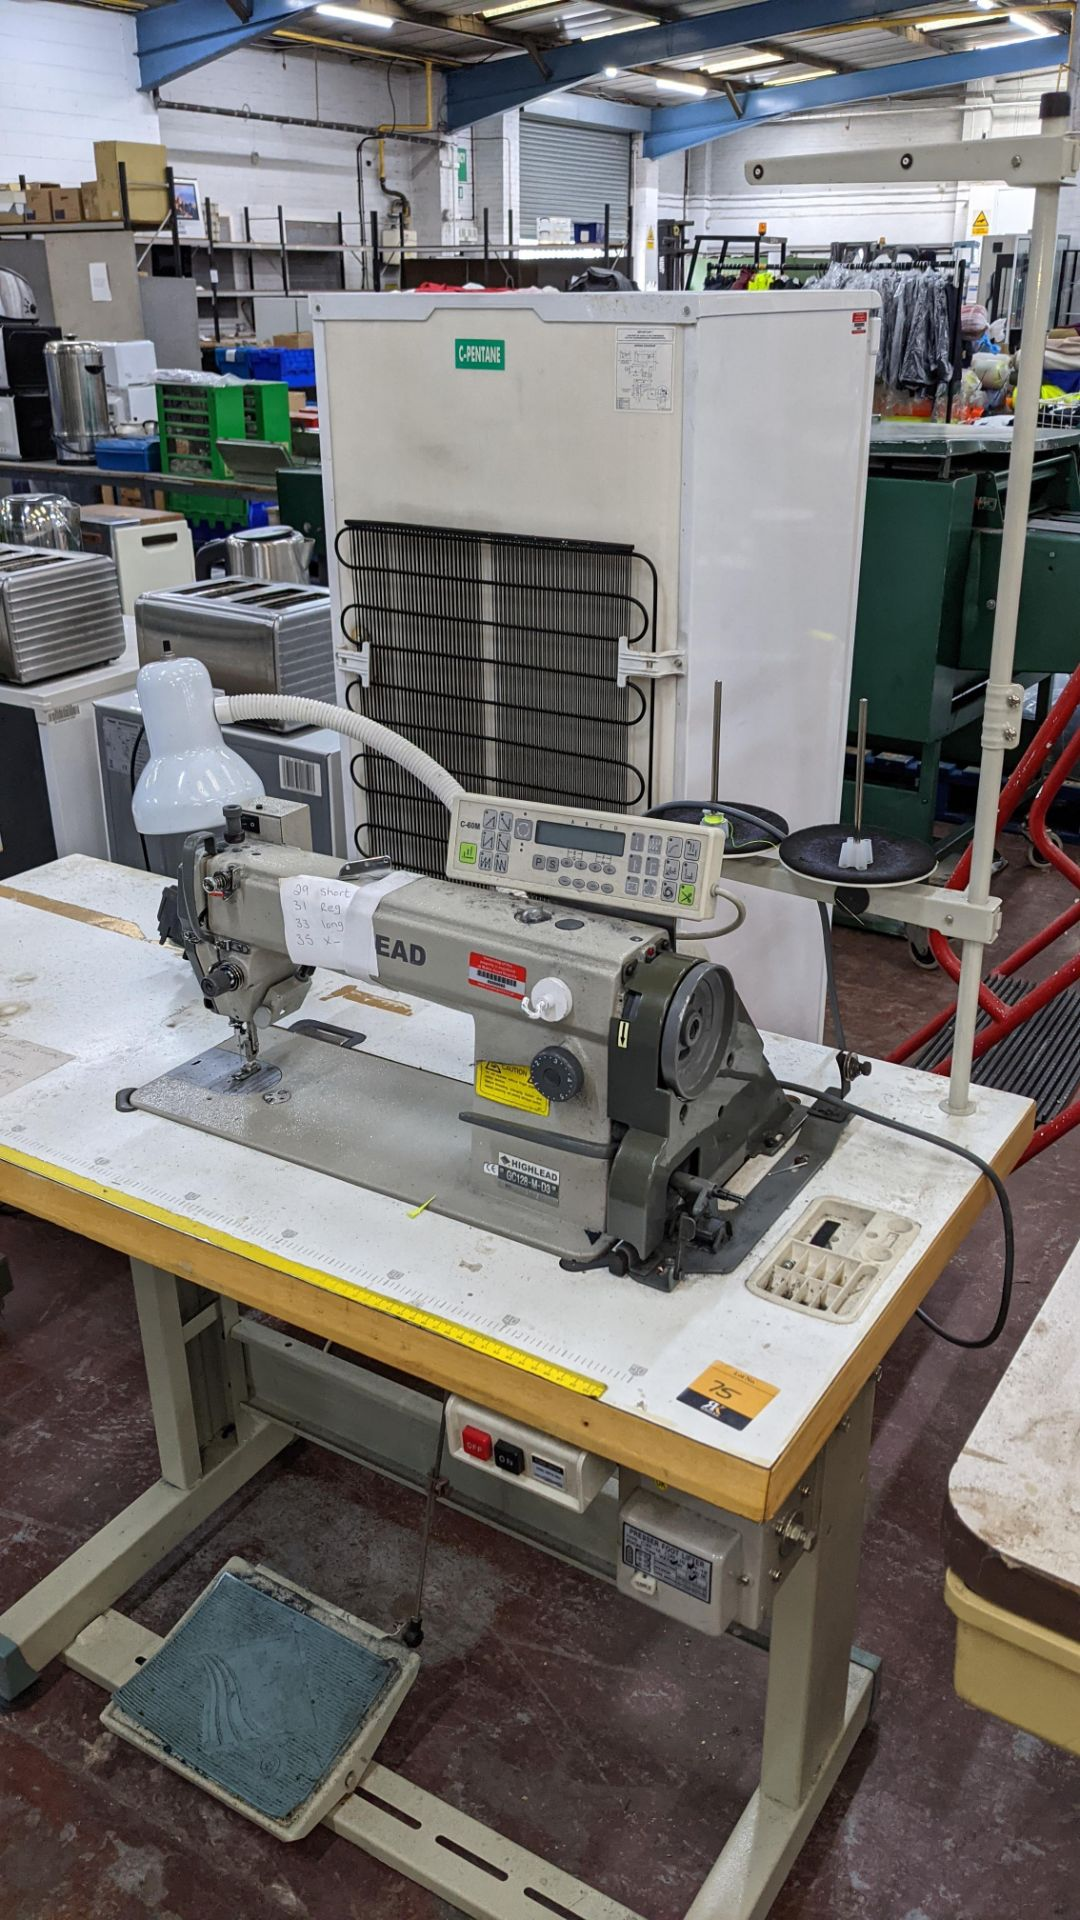 Highlead model GC128-M-D3 sewing machine with model C-60M digital controller - Image 3 of 17